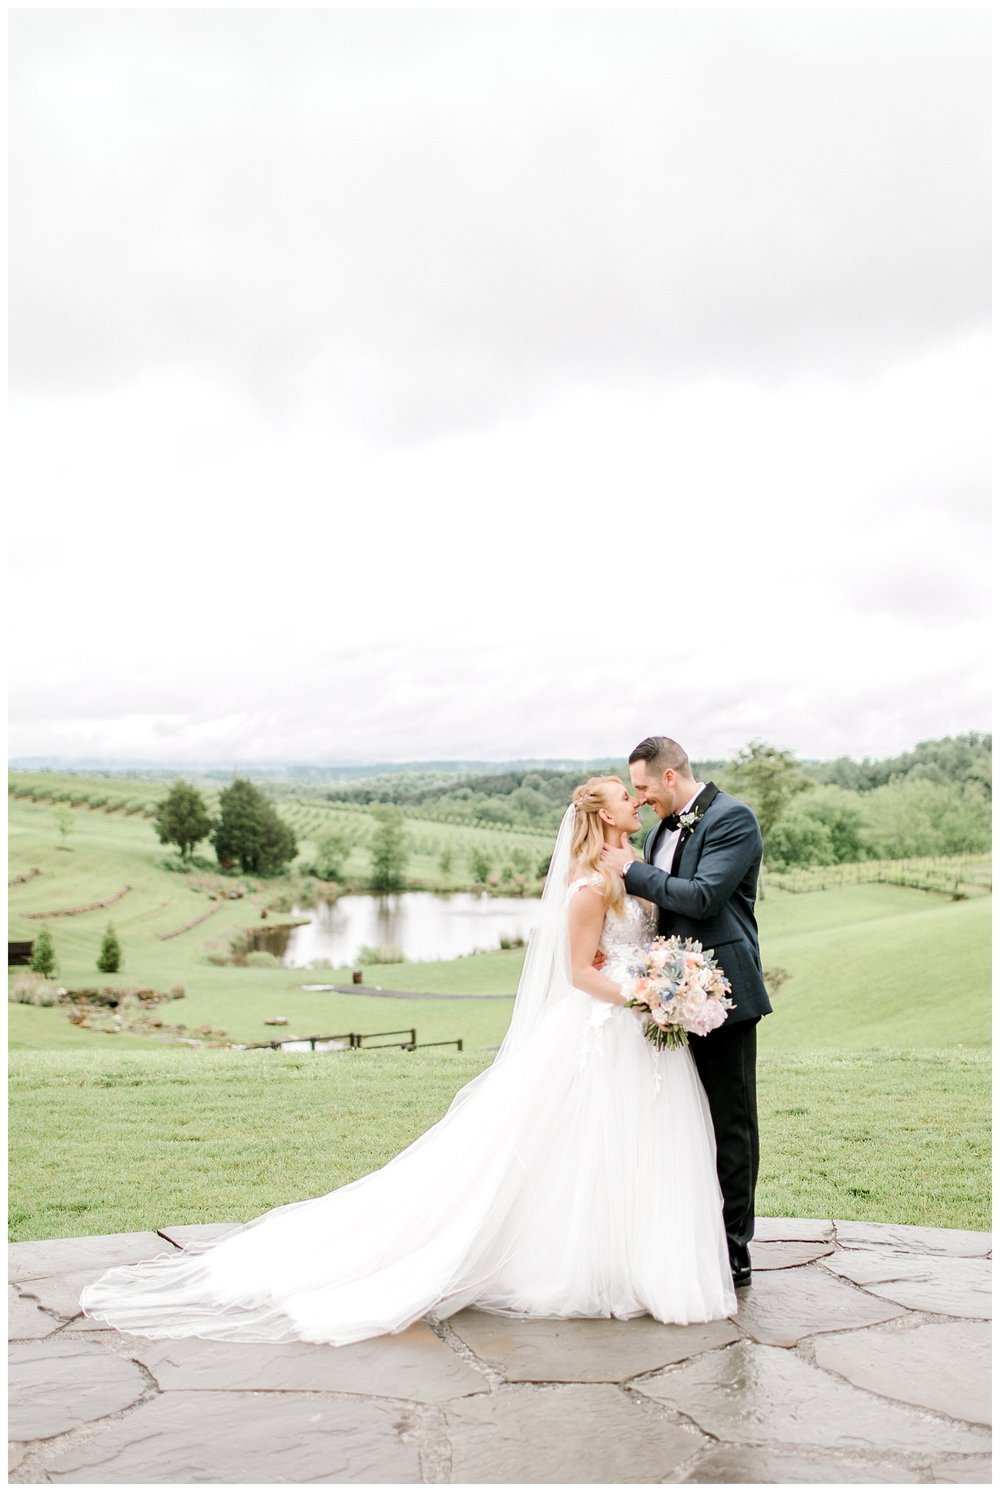 Stone Tower Winery Wedding Virginia Wedding Photographer Kir Tuben_0062.jpg